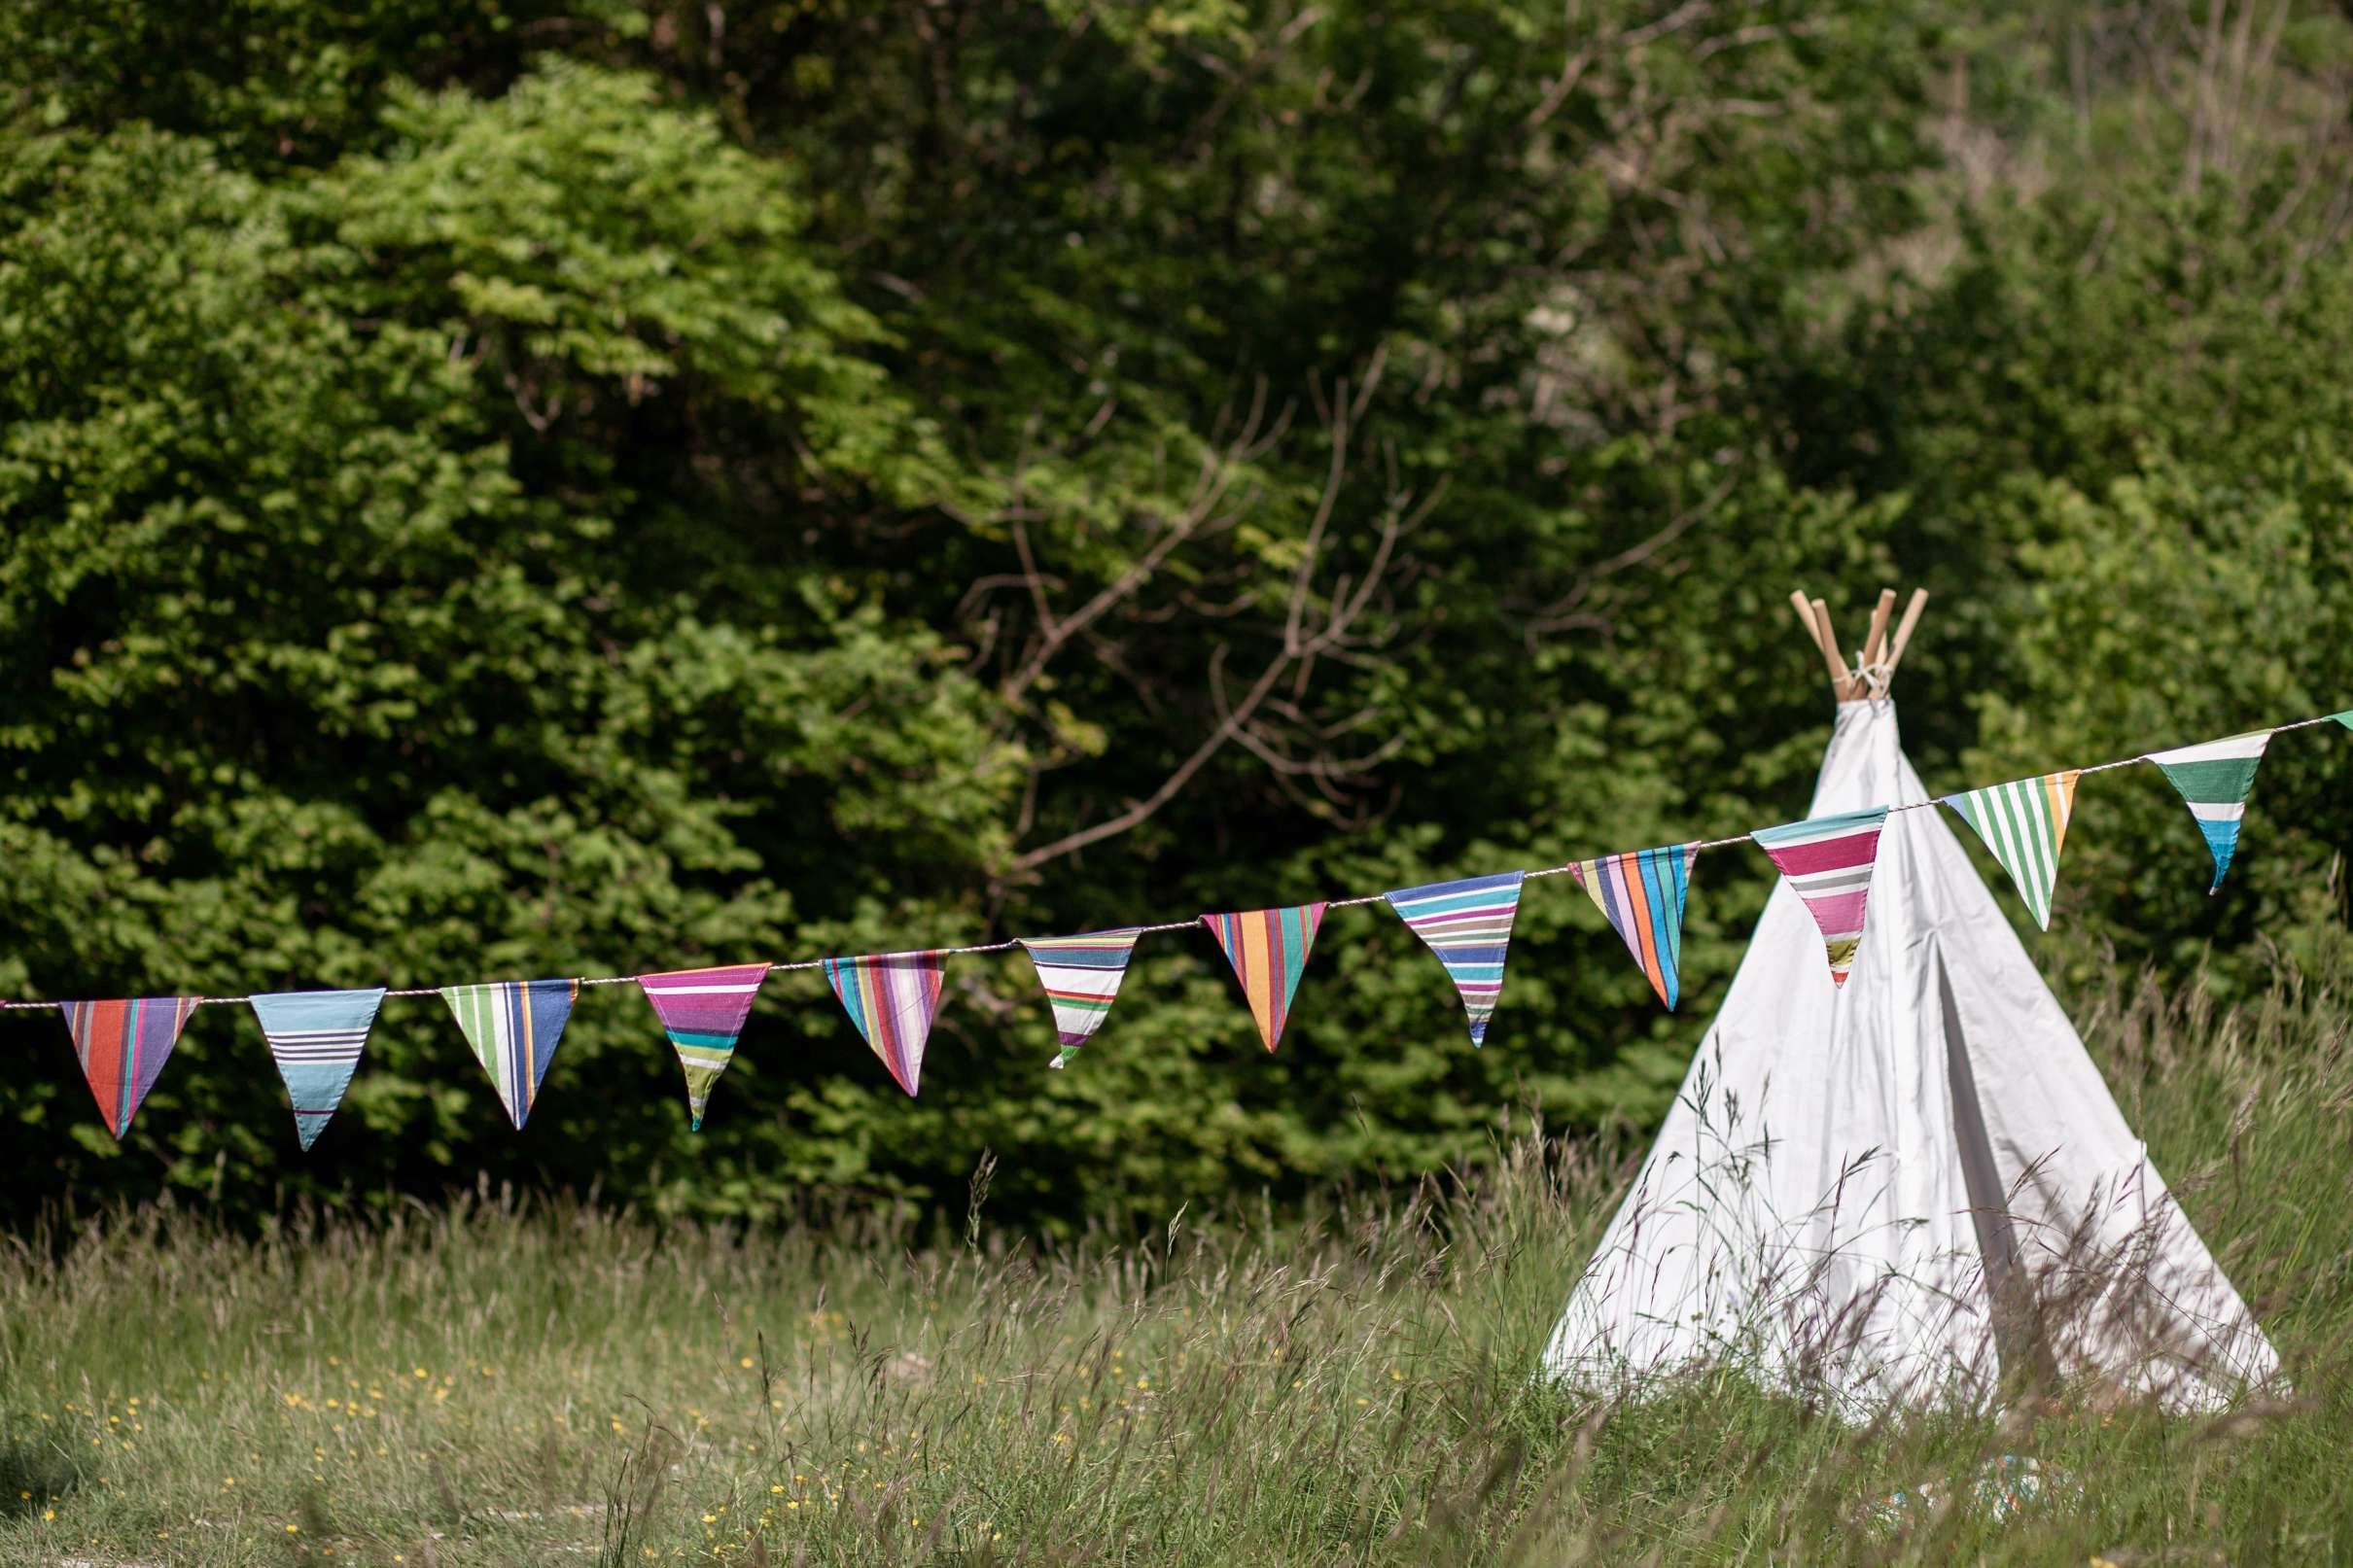 A photo of a teepee and bunting in a grassy field